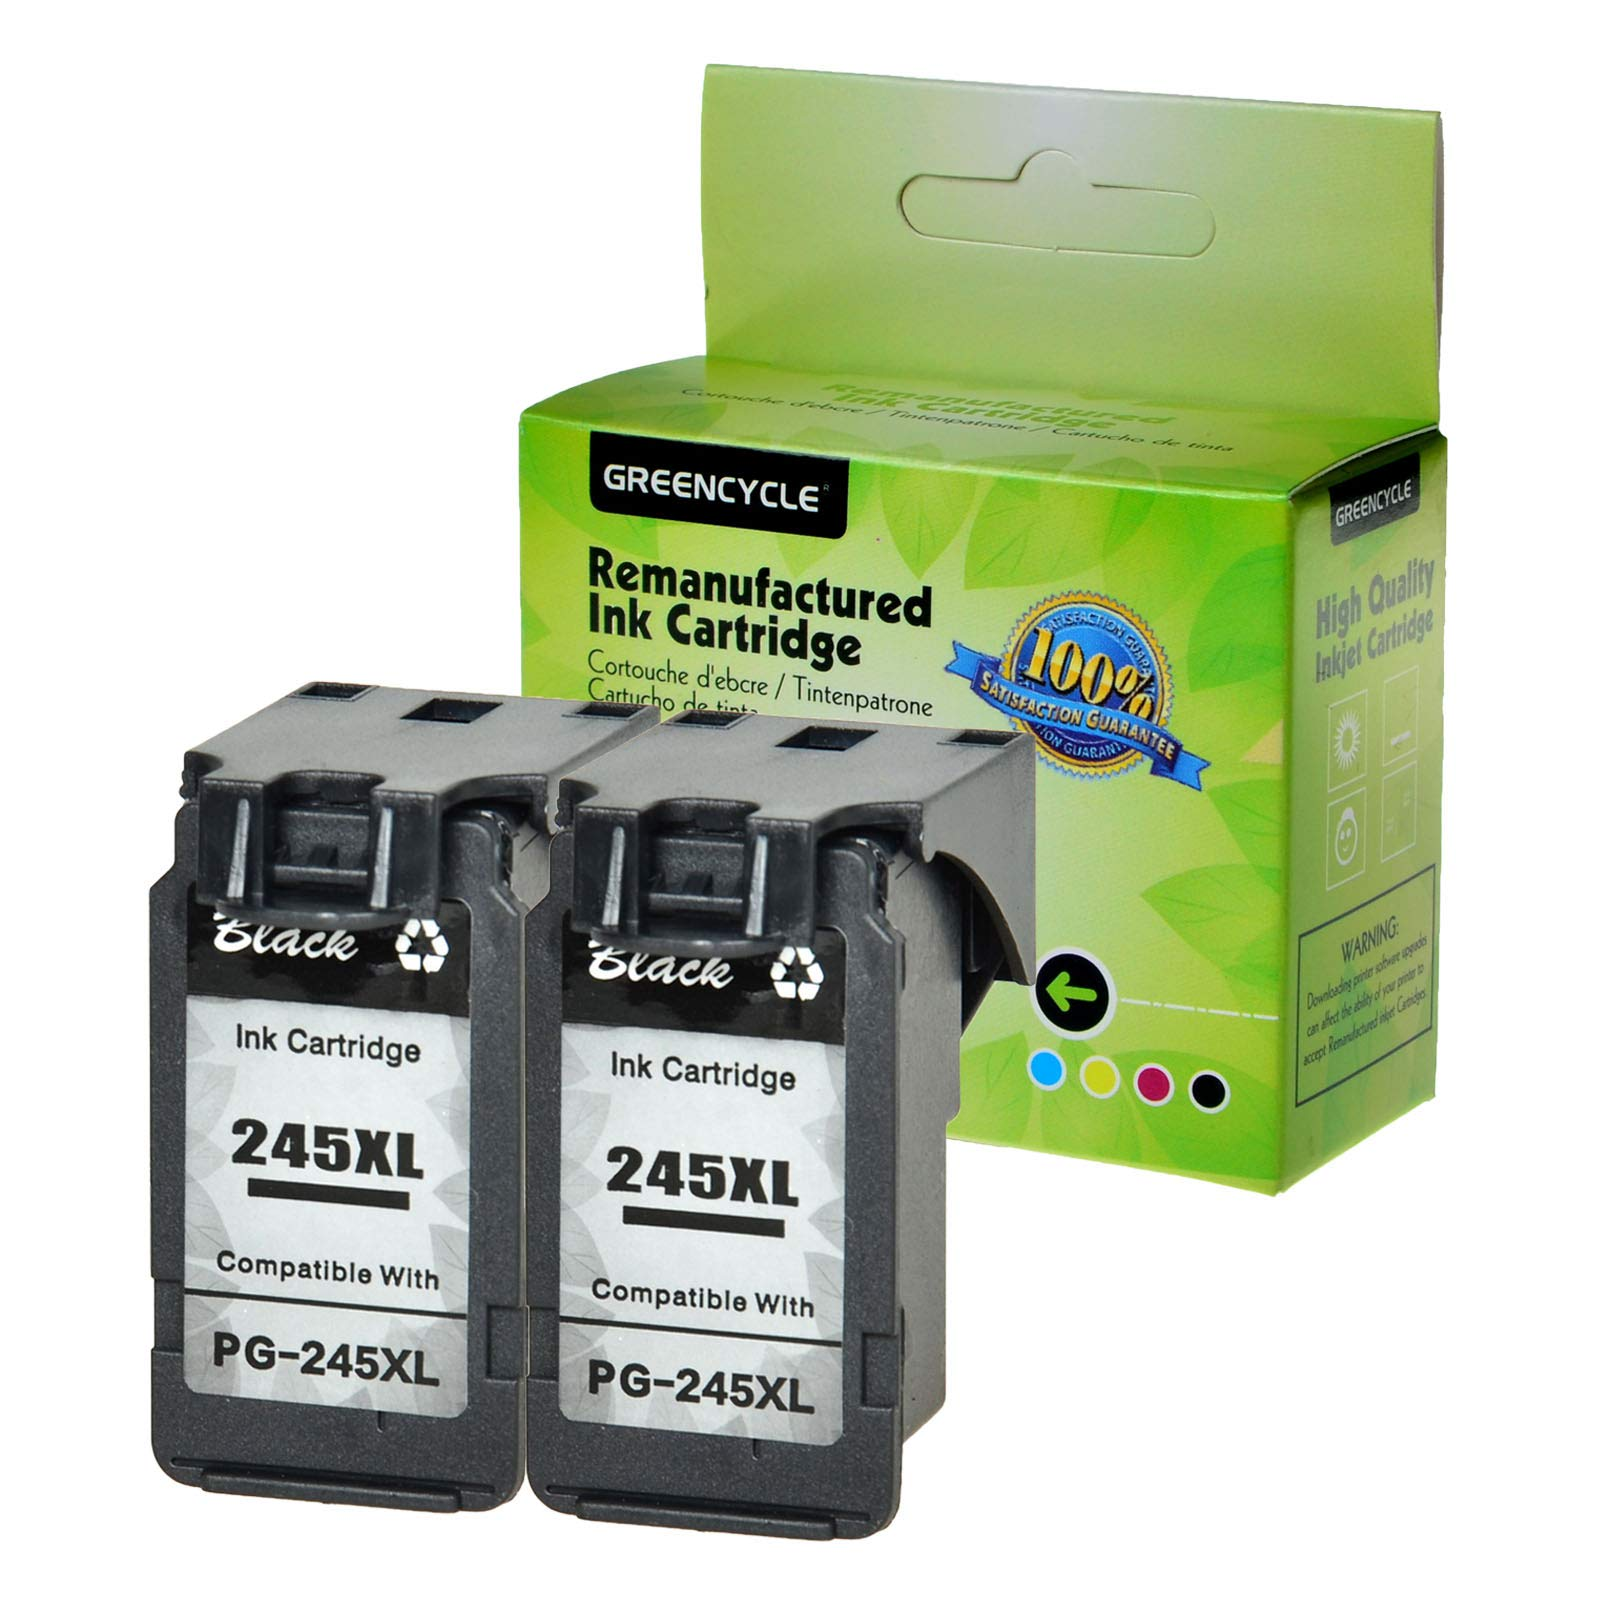 GREENCYCLE Re-Manufactured PG-245XL PG-245 Ink Cartridge